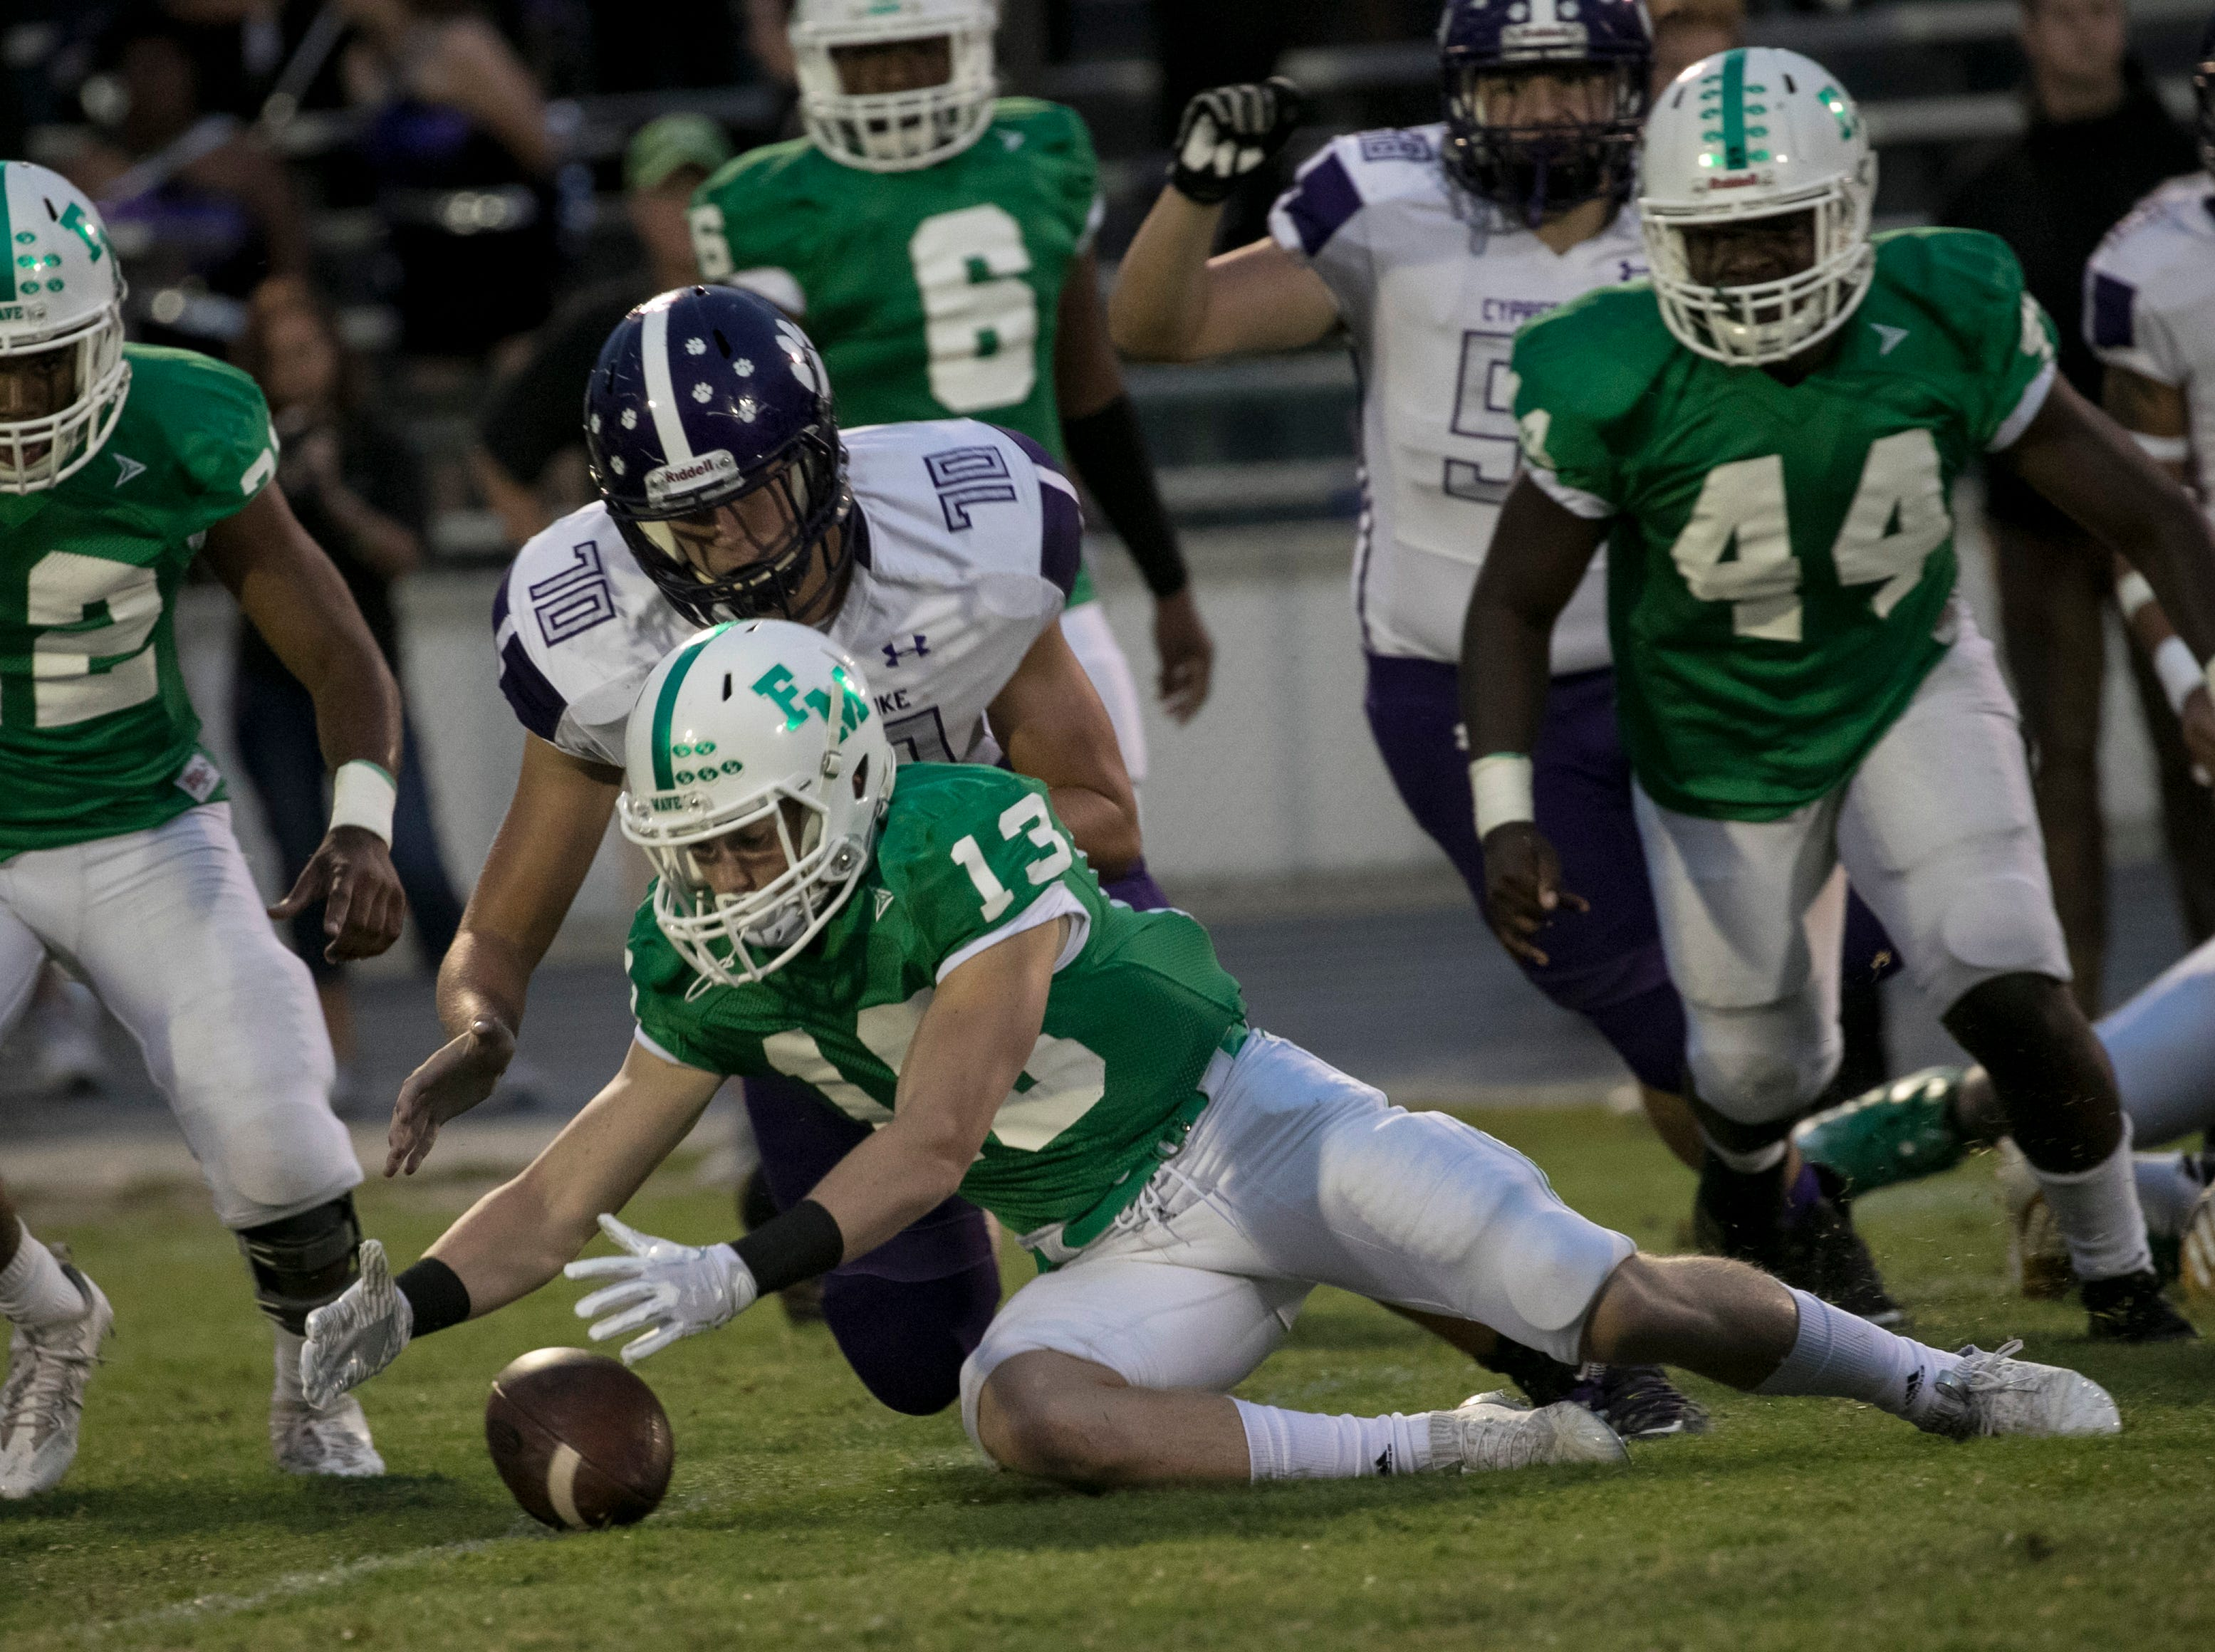 Brady Luttrell of Fort Myers recovers a fumble in the first quarter against Cypress Lake on Friday night, September 7, 2018.